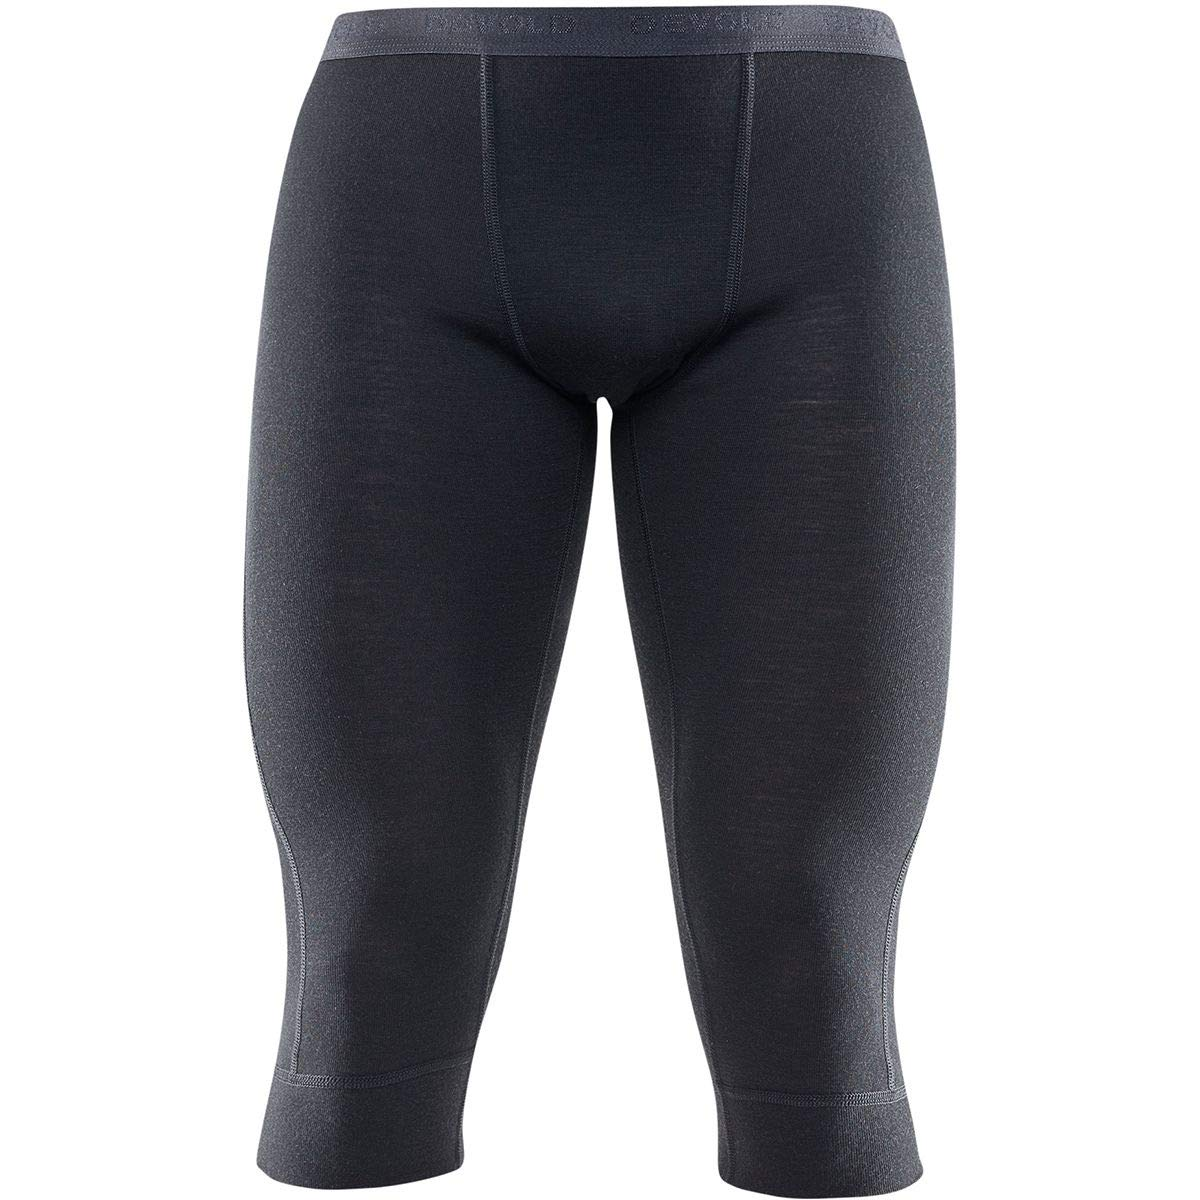 Devold 190 Hiking 3 4 Long Johns Pants Men - Unterhose aus Merinowolle